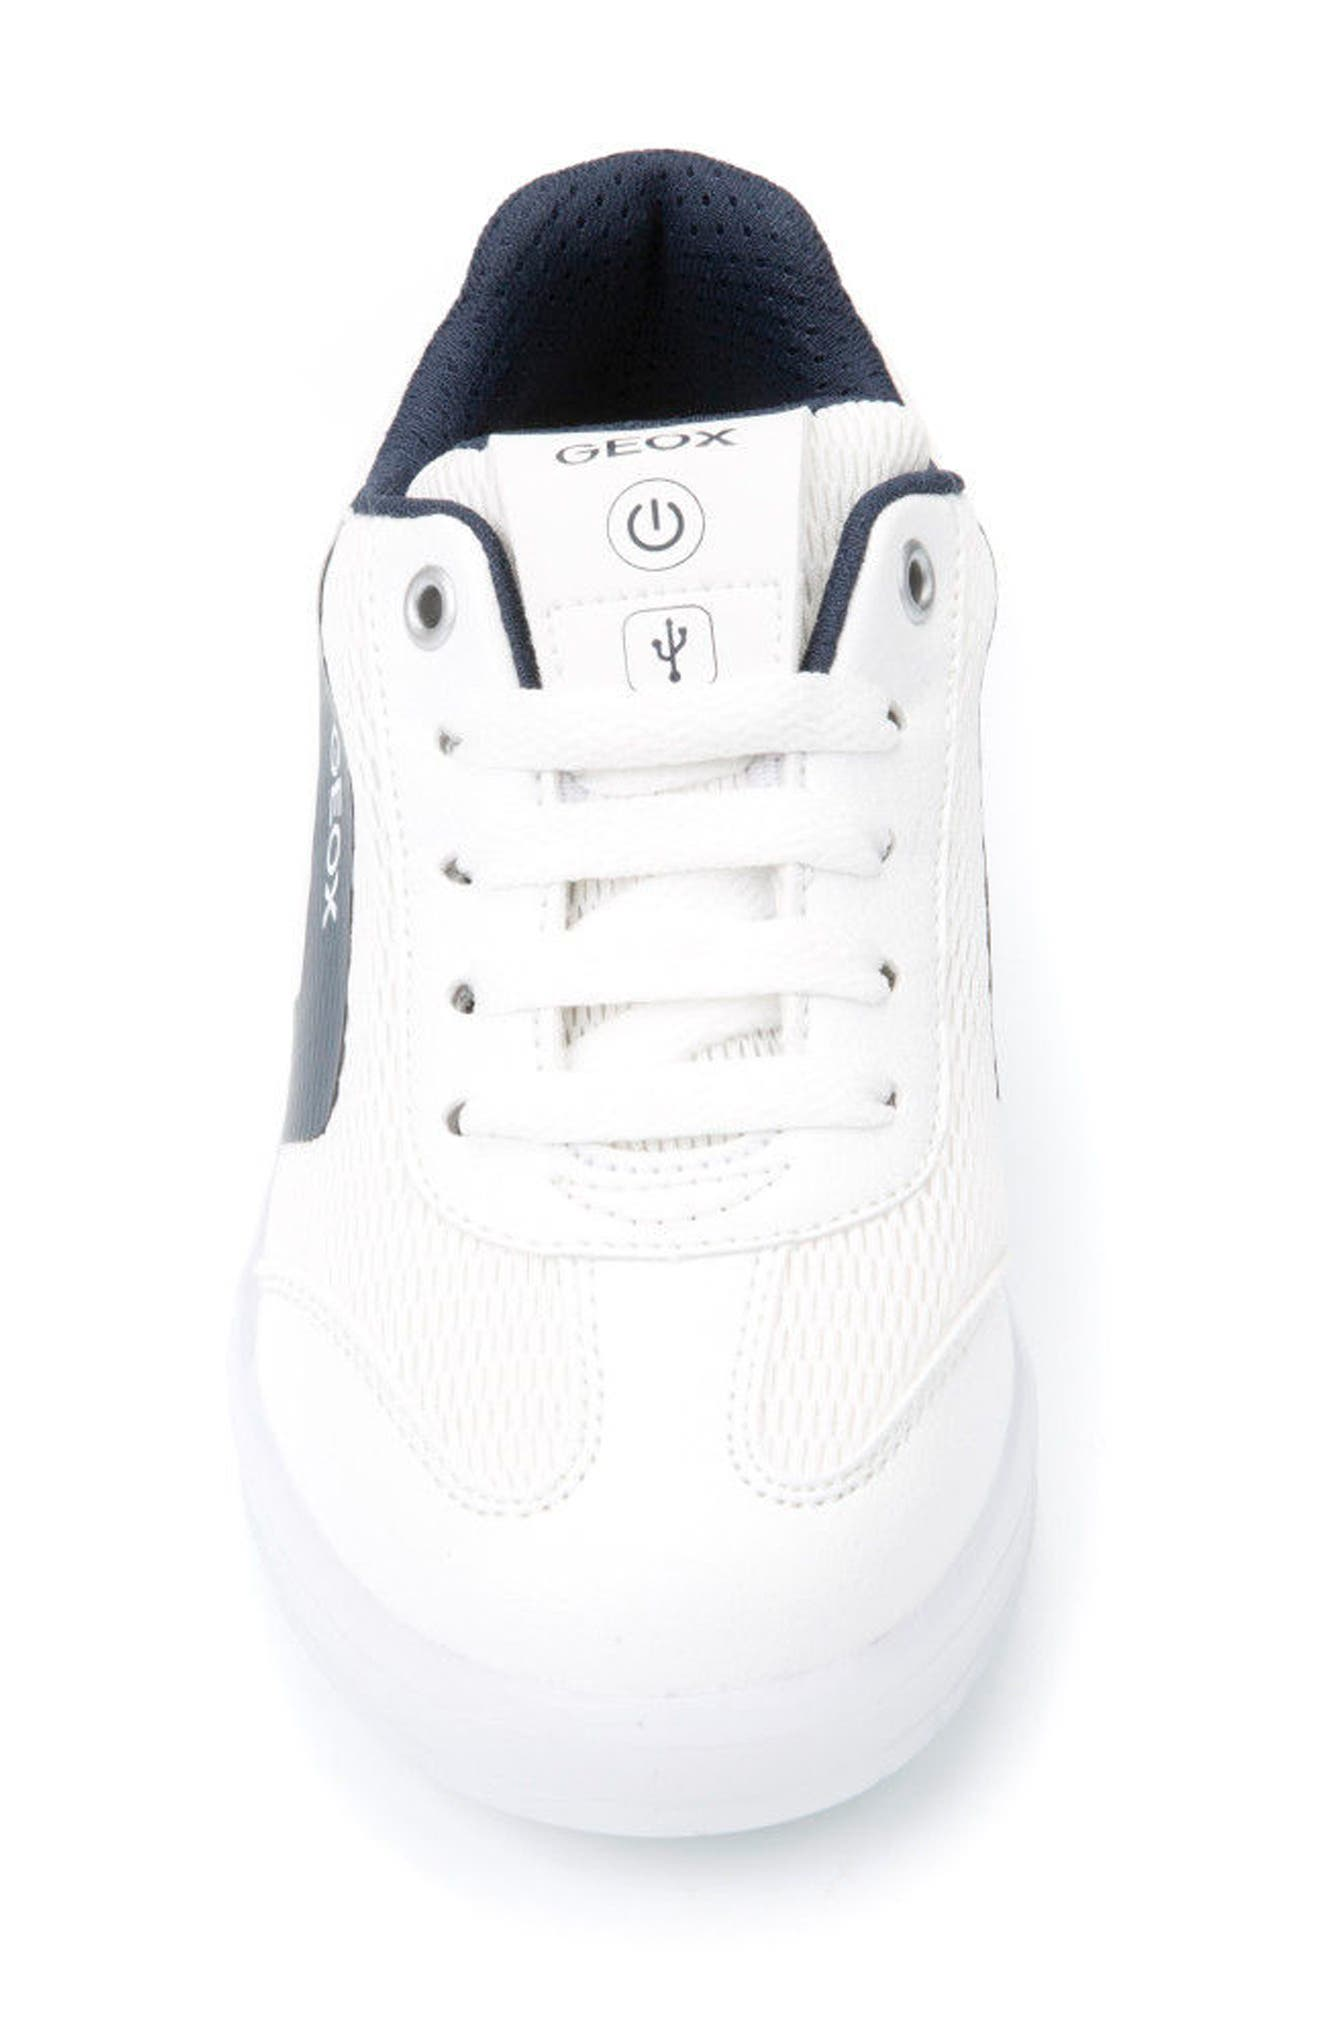 Kommodor Light-Up Low Top Sneaker,                             Alternate thumbnail 4, color,                             White/ Navy